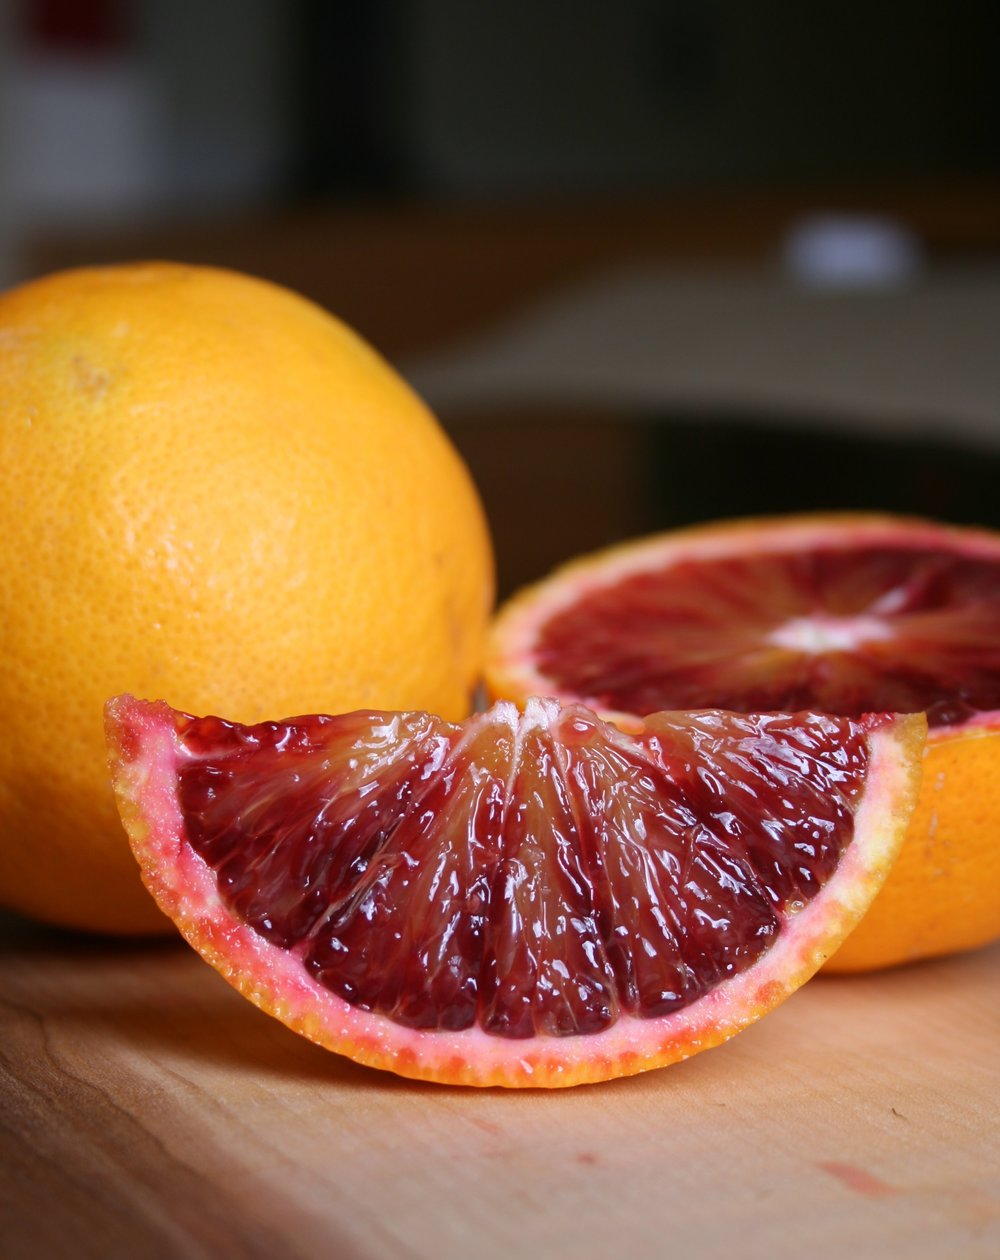 blood+orange+slice+2.jpg